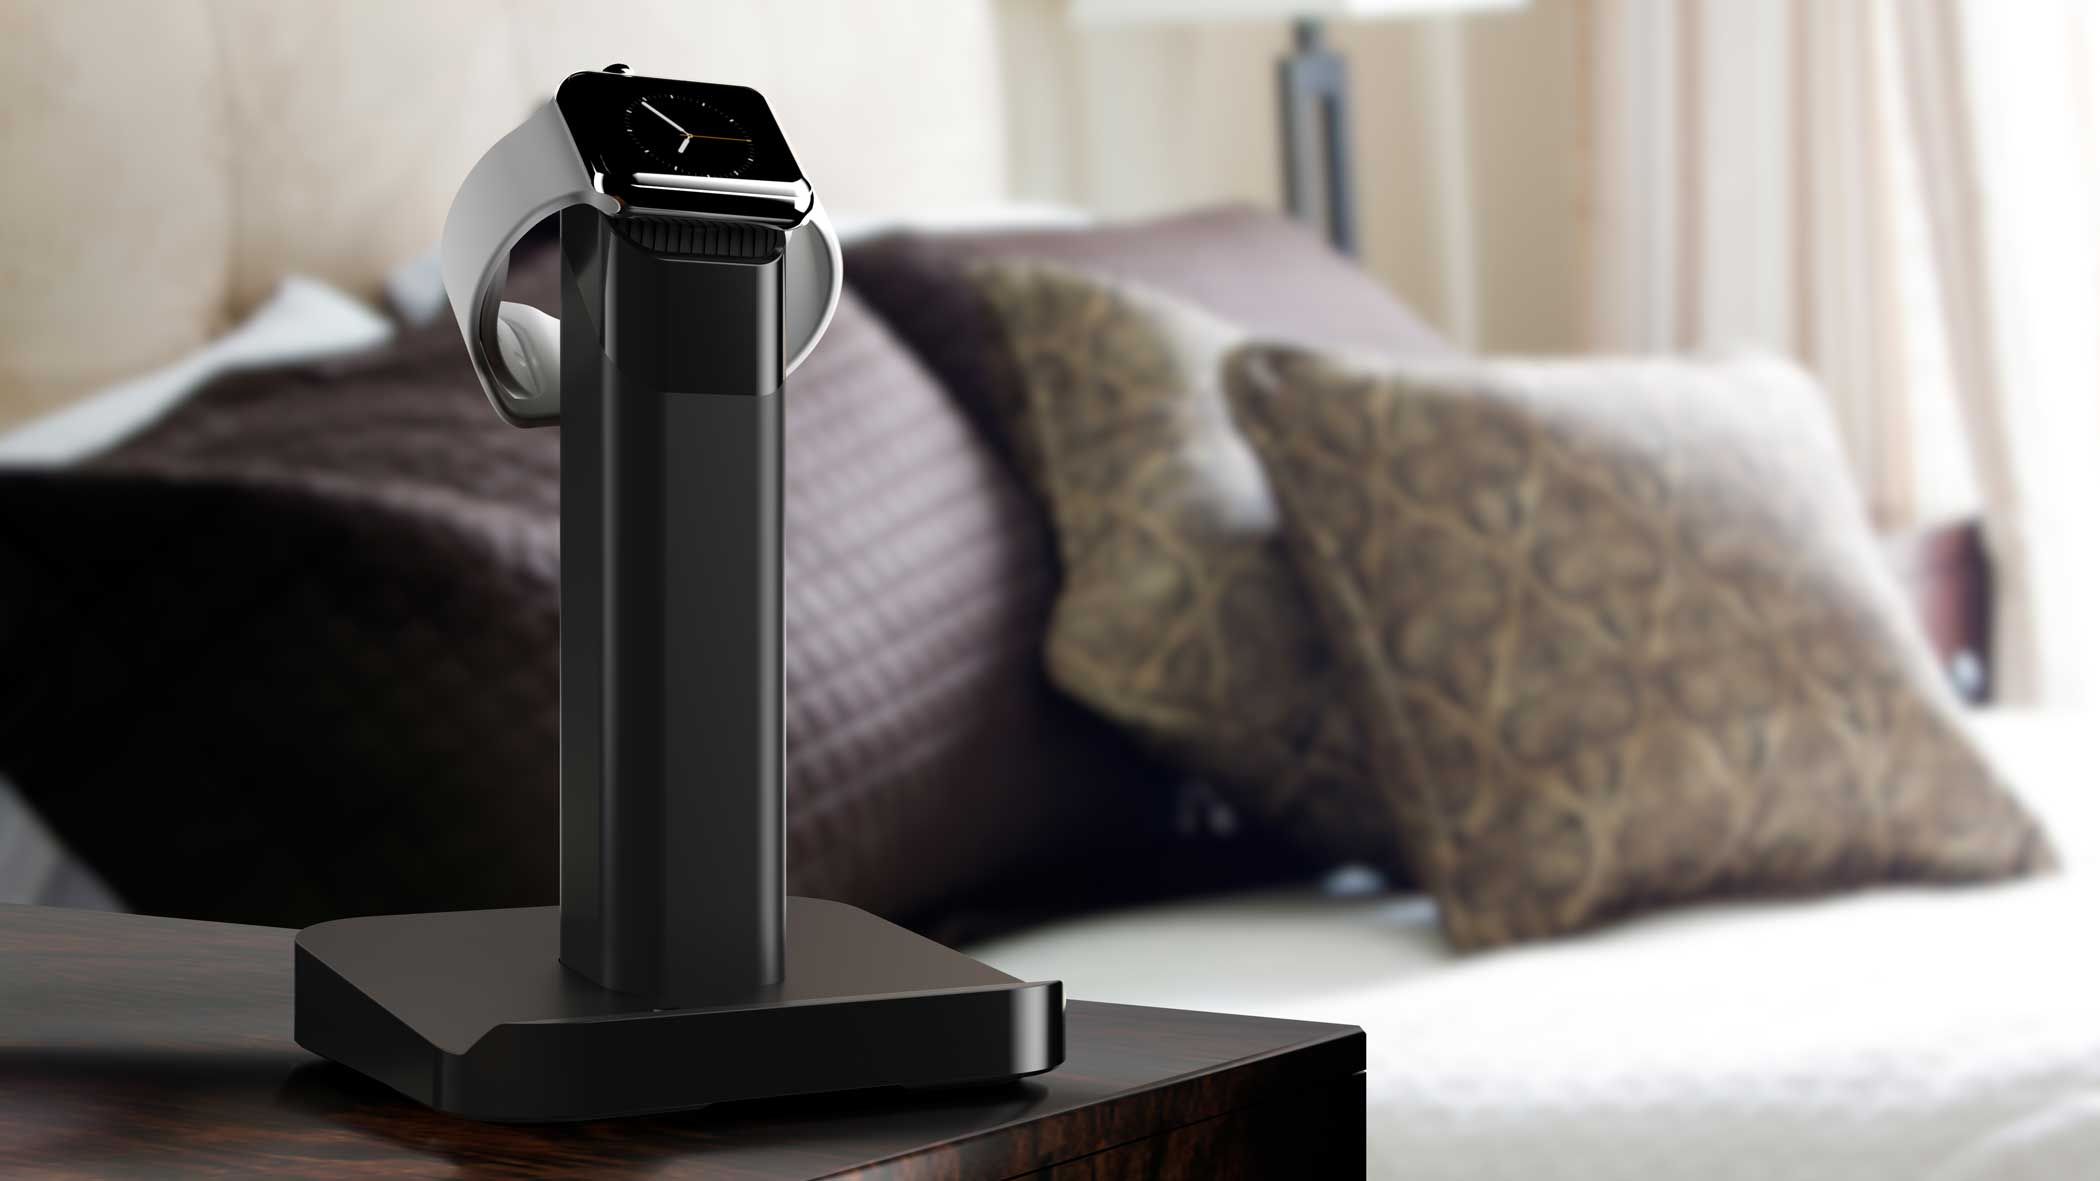 Griffin Watchstand This elegant watch stand ($29.99) doubles as an Apple Watch charger, allowing customers to slide in the Apple-provided magnetic charging cable so the device is ready to charge at all times.